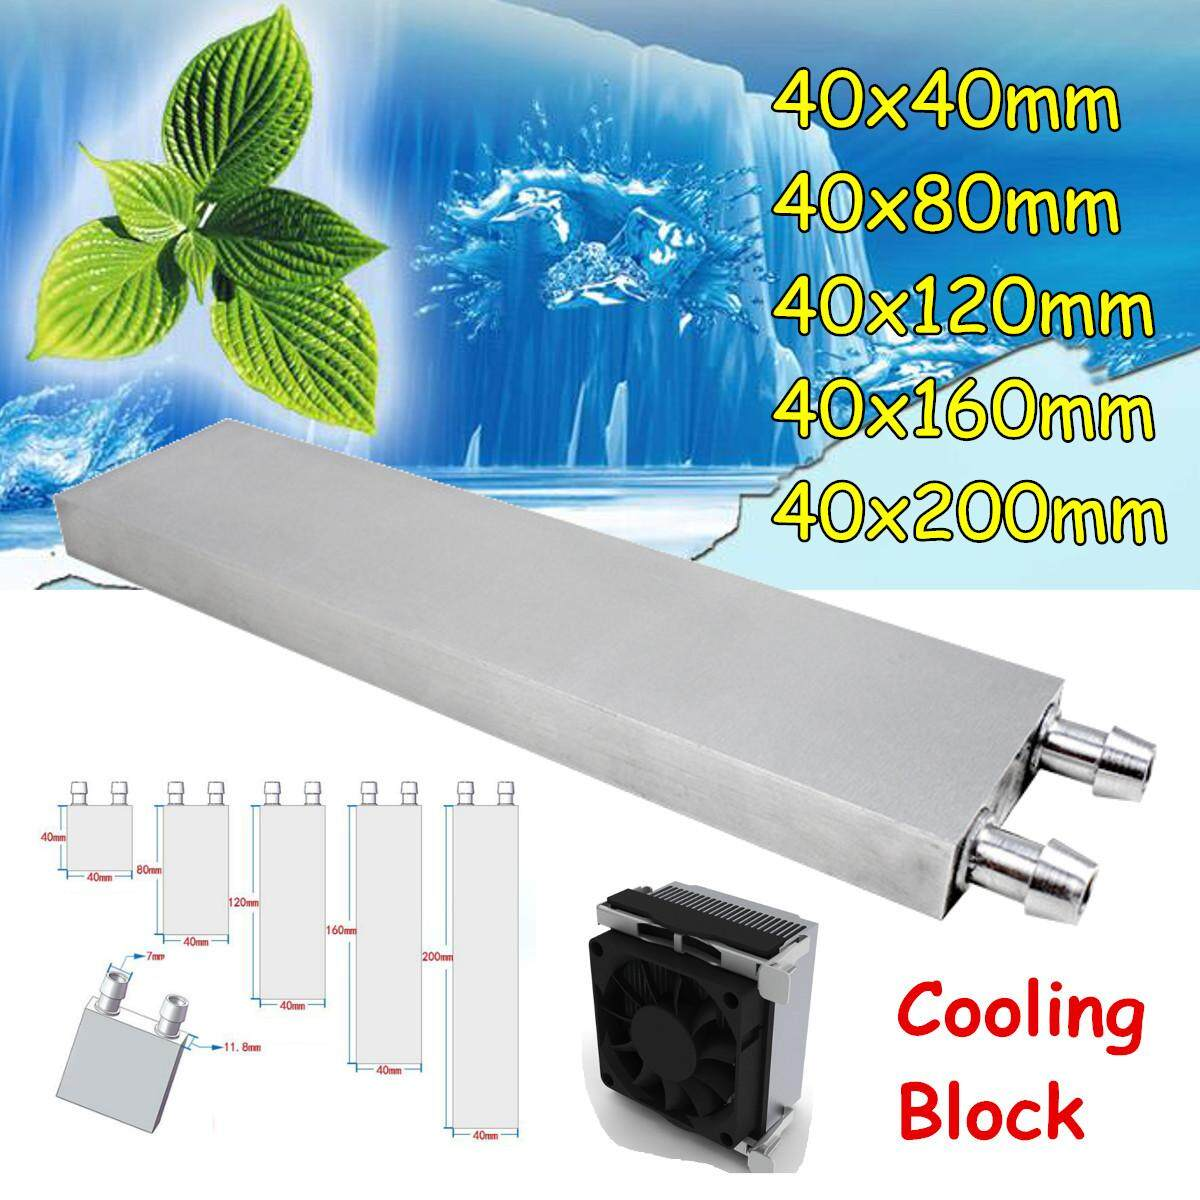 1 PCS Water Cooling Block Radiator Liquid Cooler Aluminum Heat Sink #40*80mm